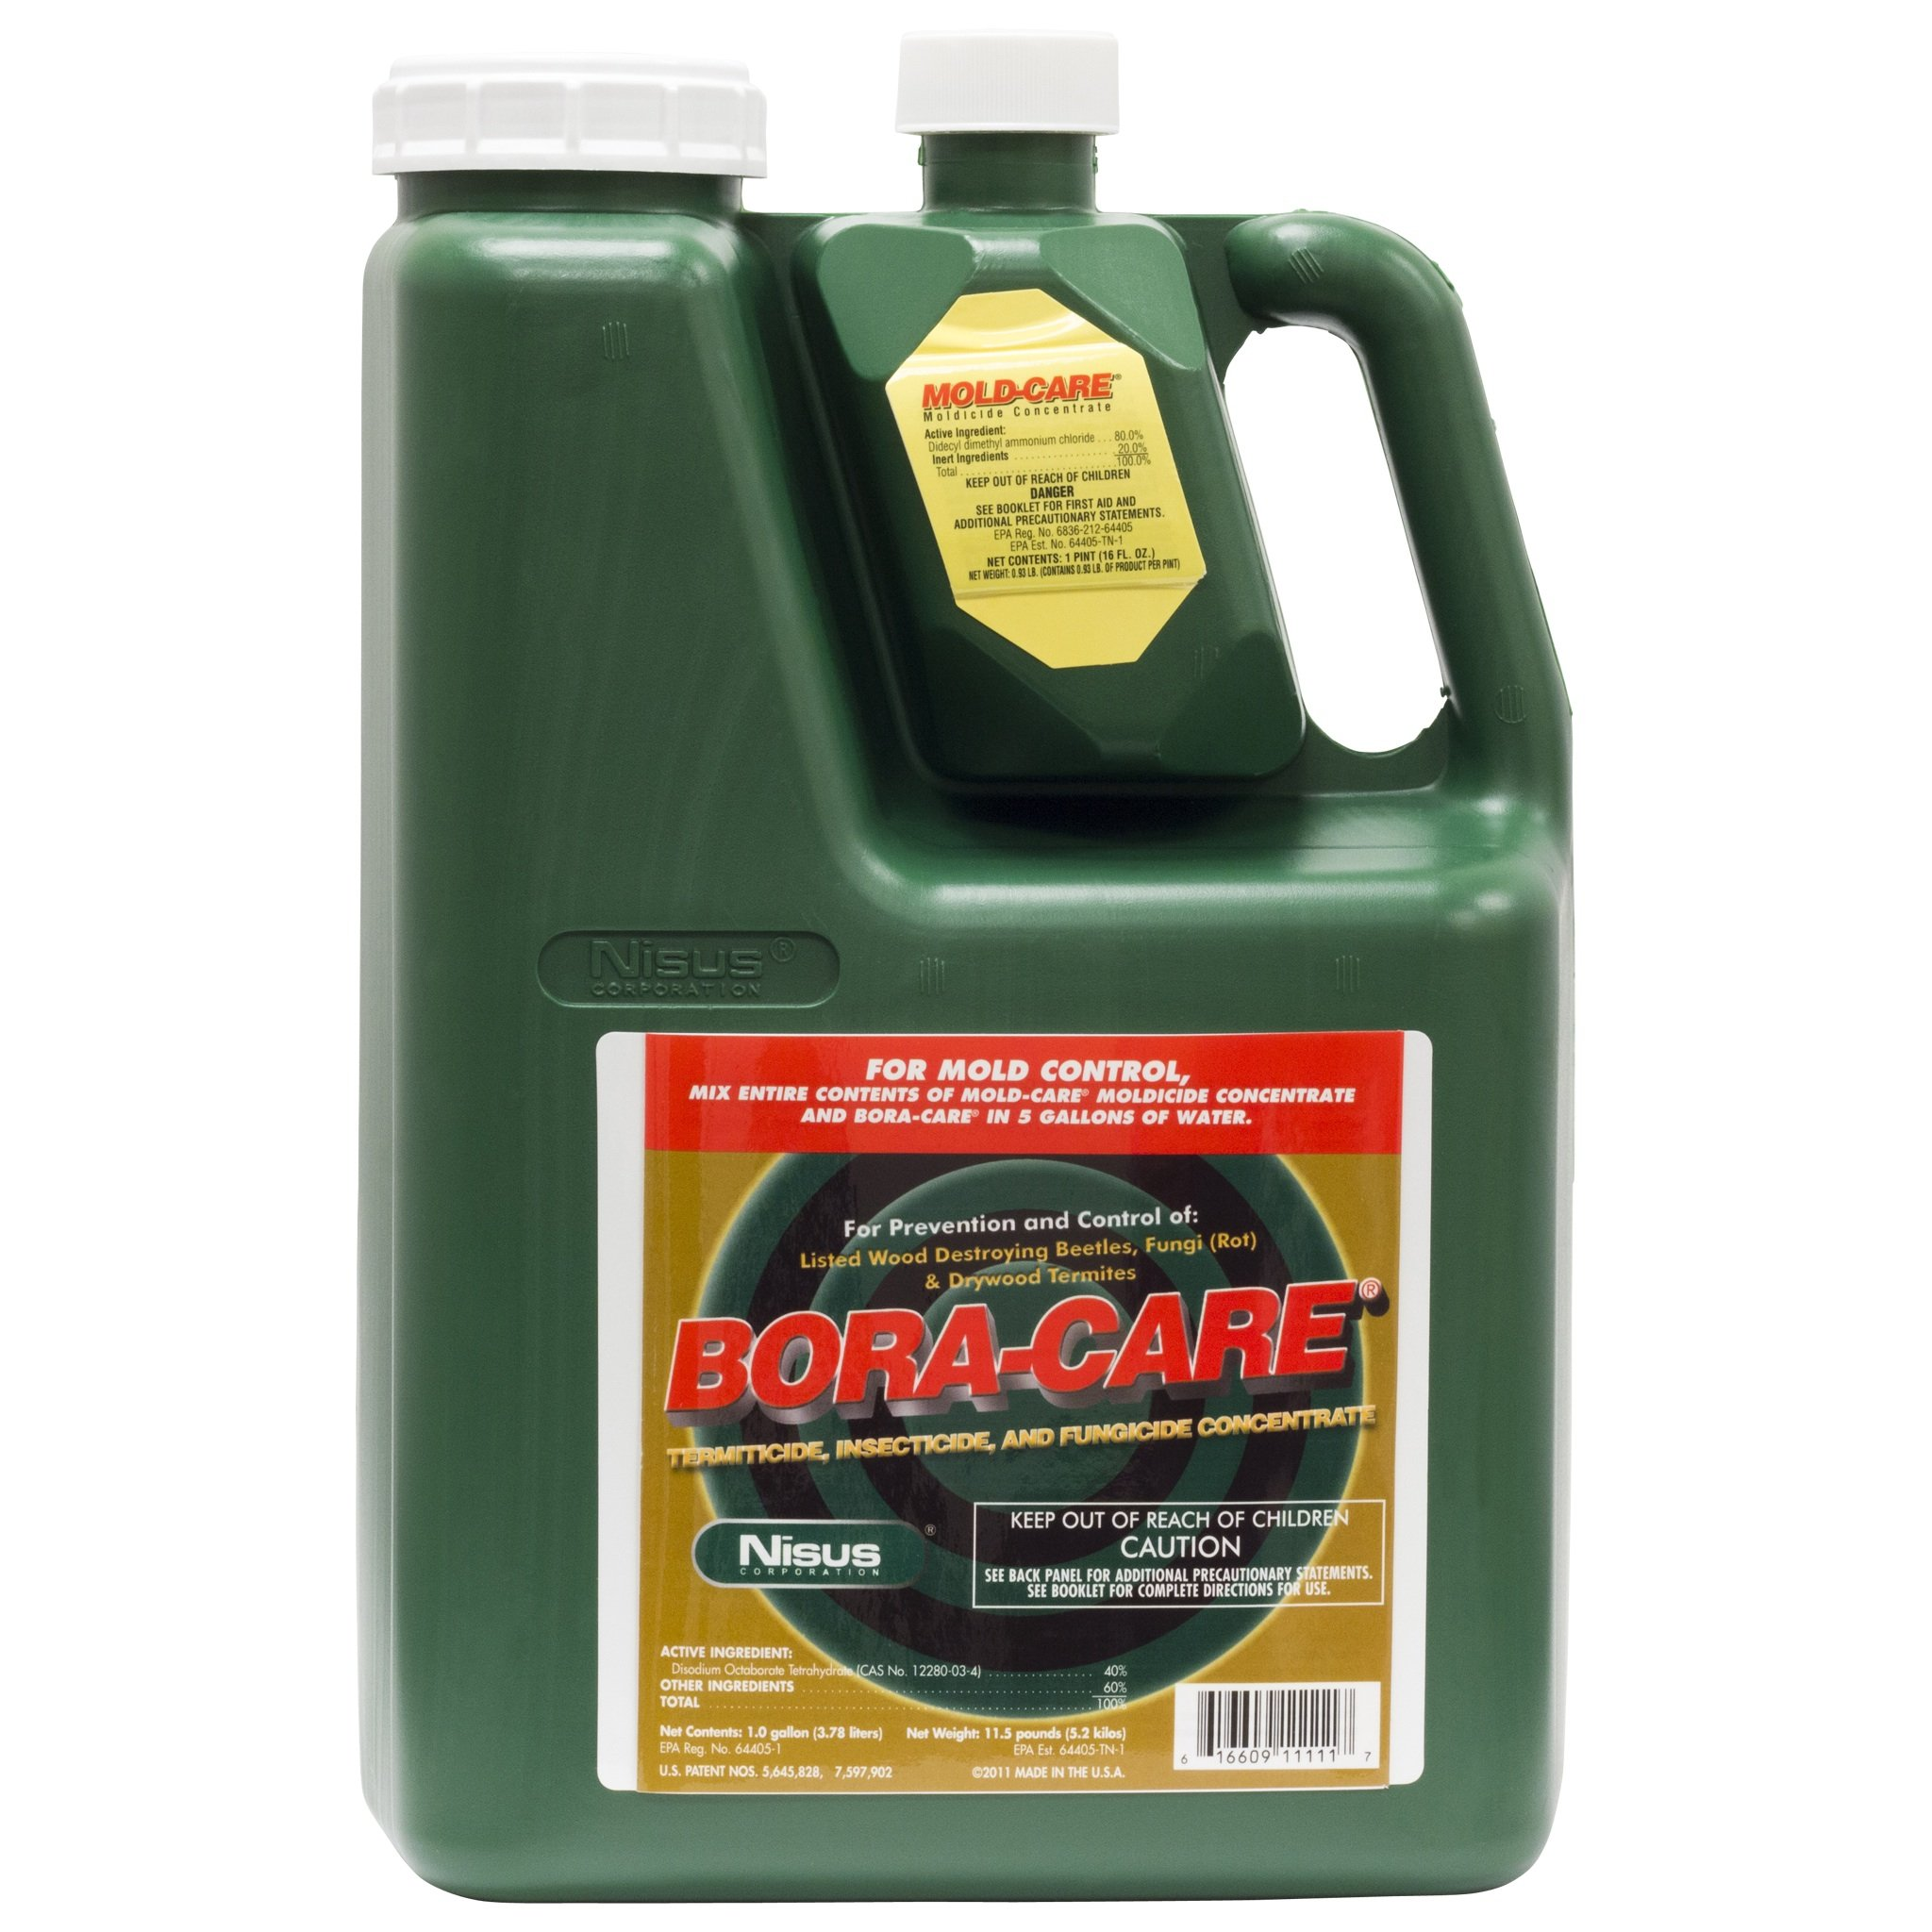 Bora-Care® with Mold-Care 2 Gallons 608794